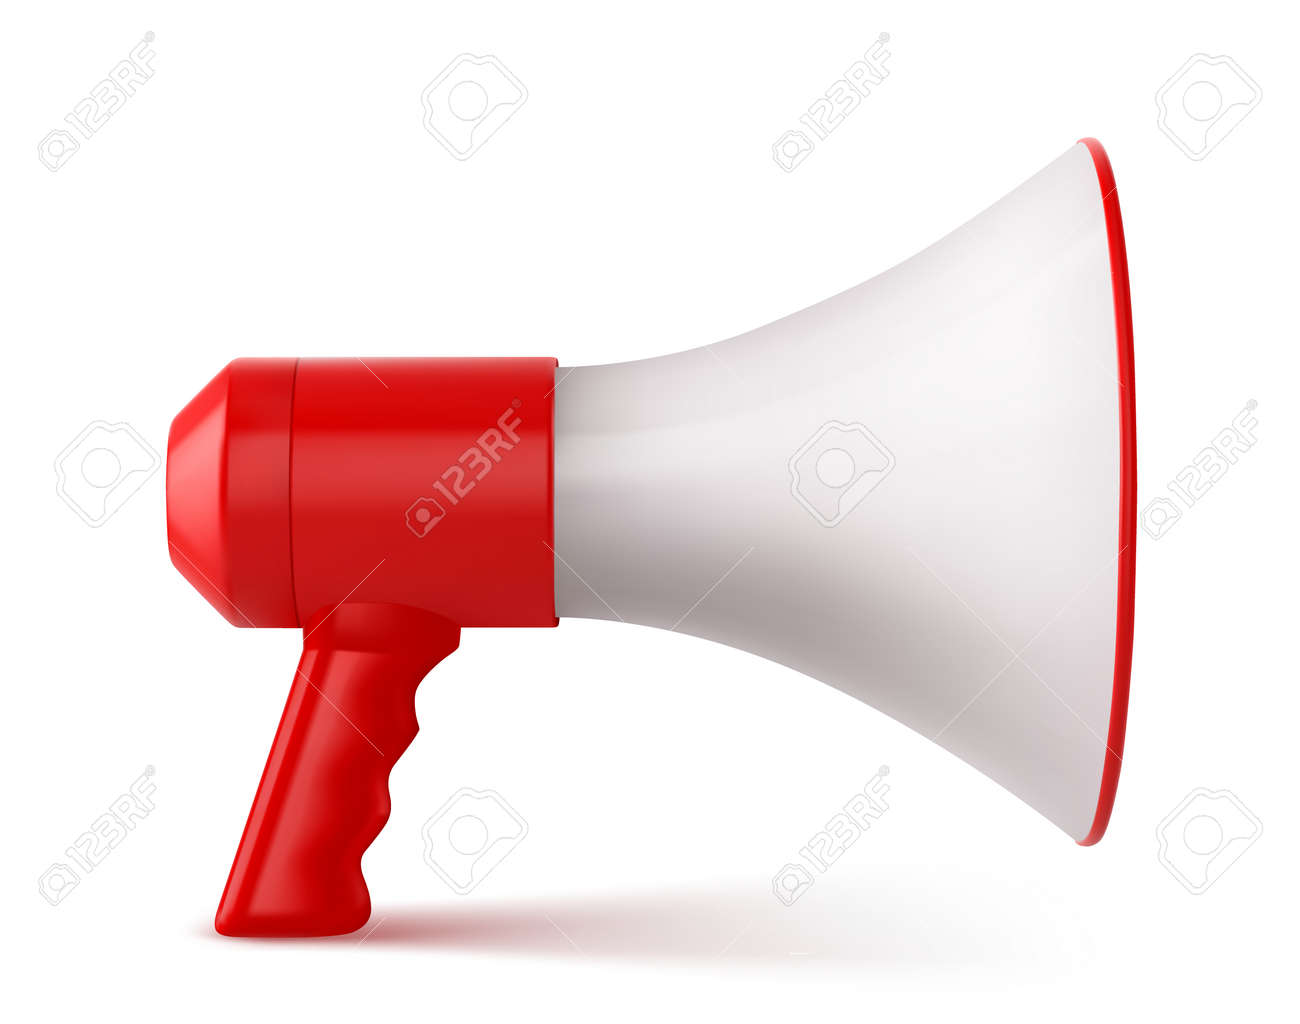 Red and White Megaphone Isolated on White Background. Vector illustration - 167221605